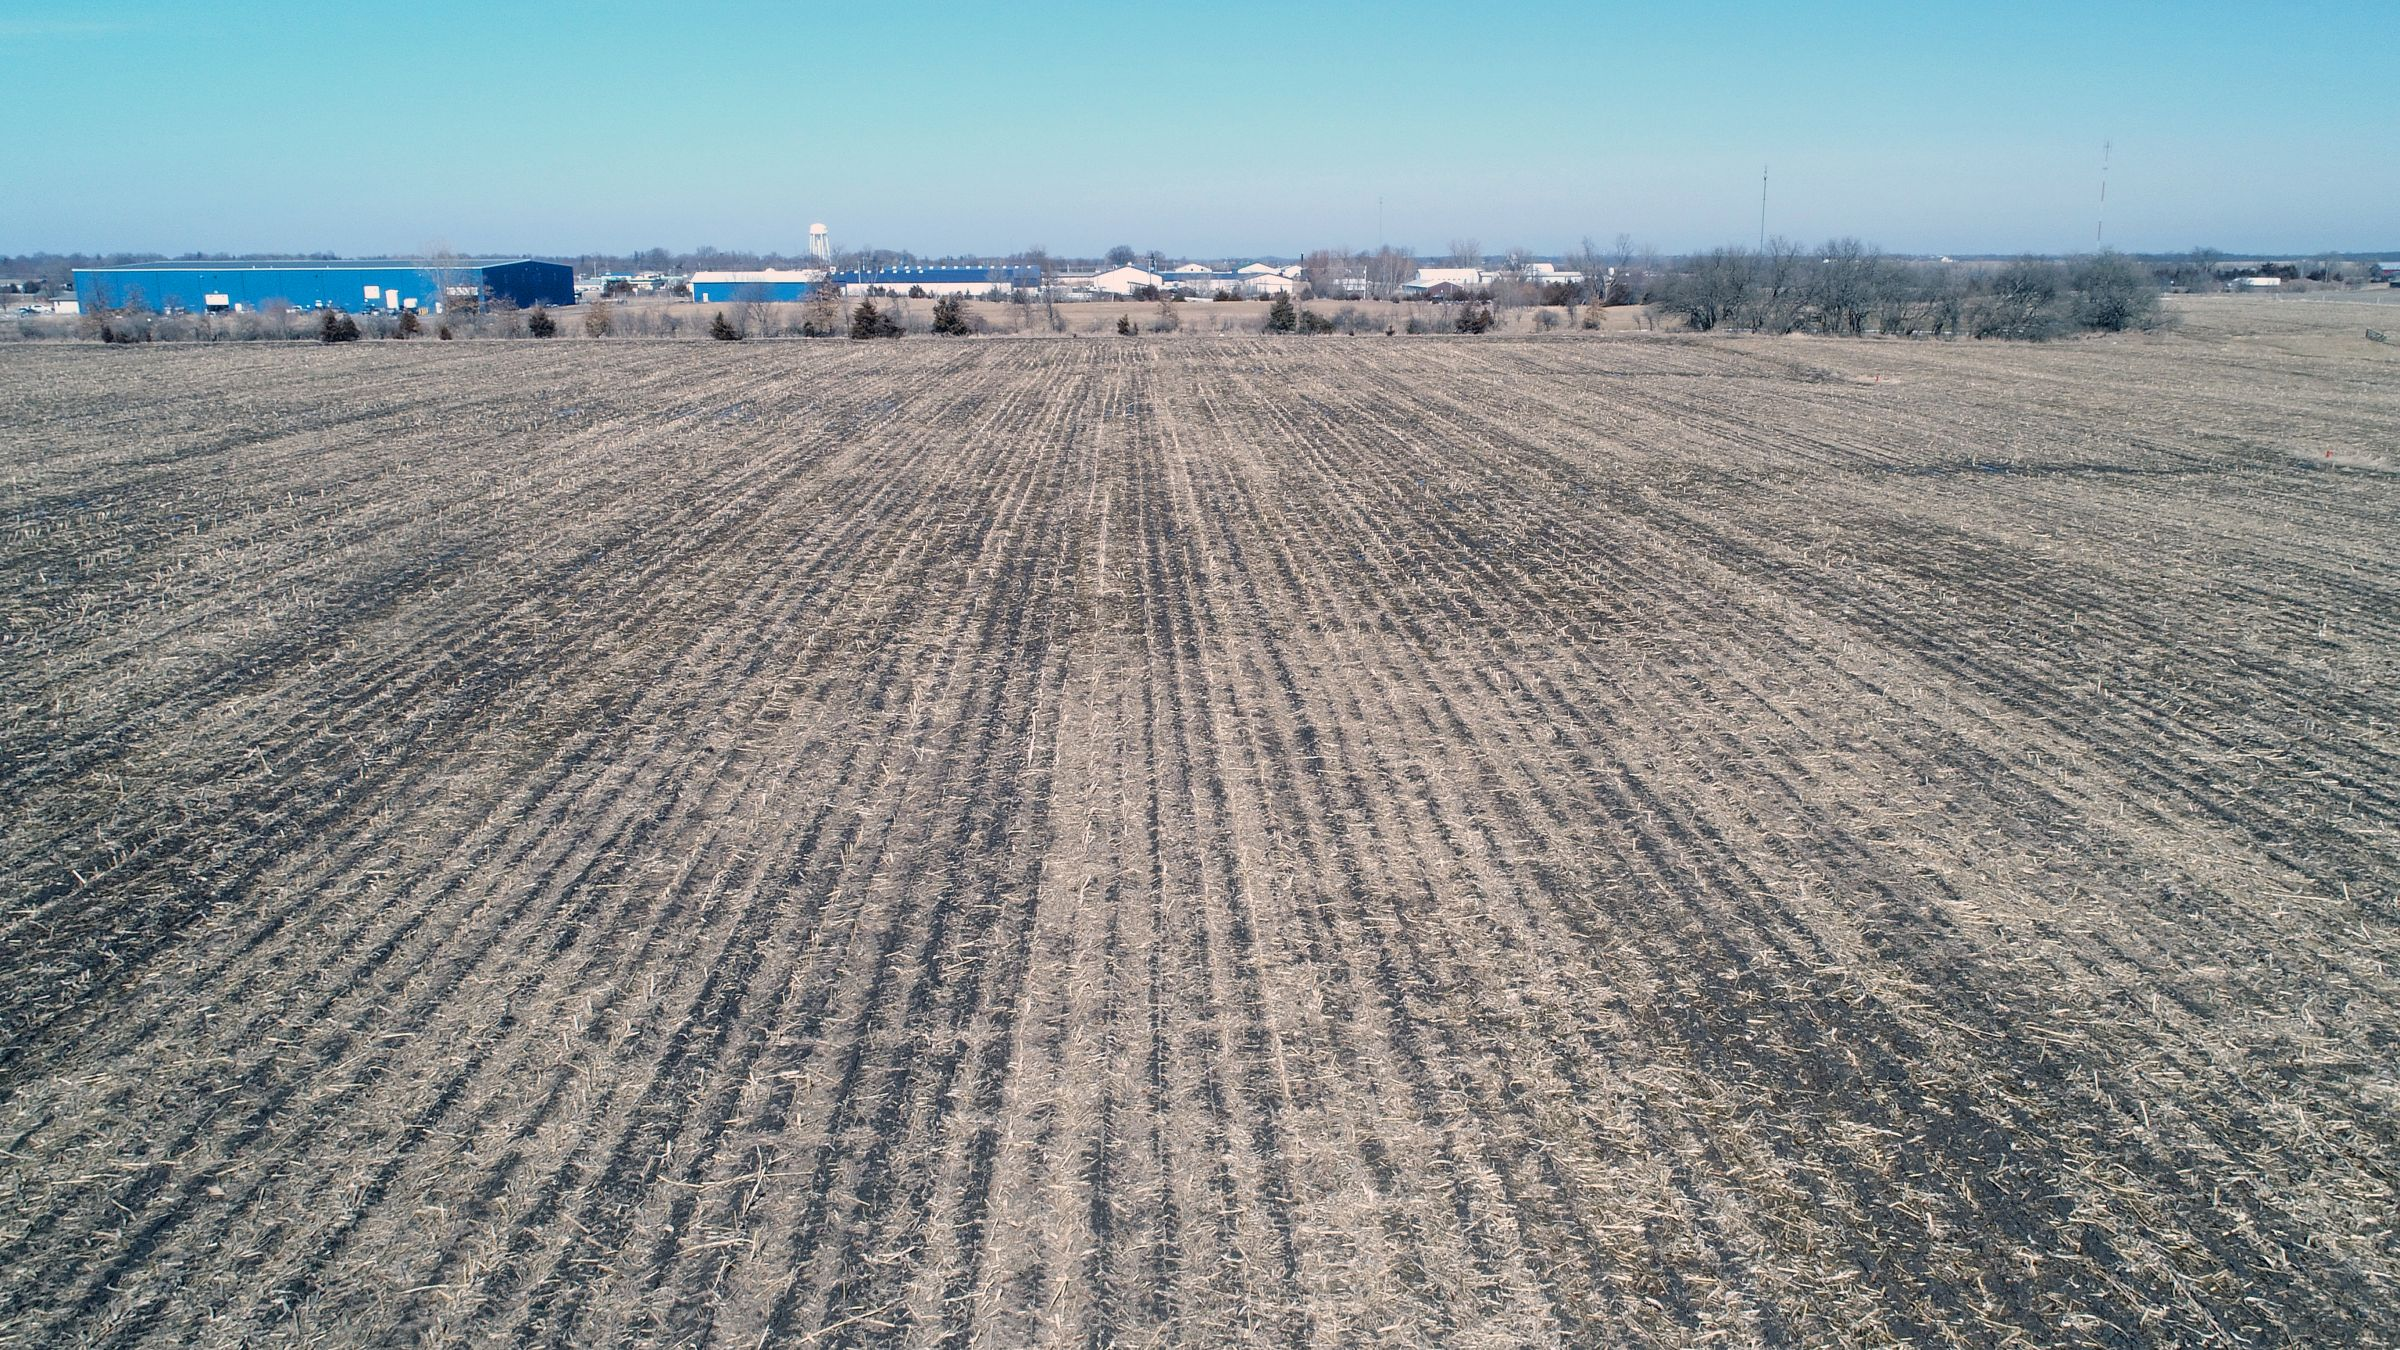 land-lucas-county-iowa-40-acres-listing-number-15394-6-2021-03-05-204341.JPG